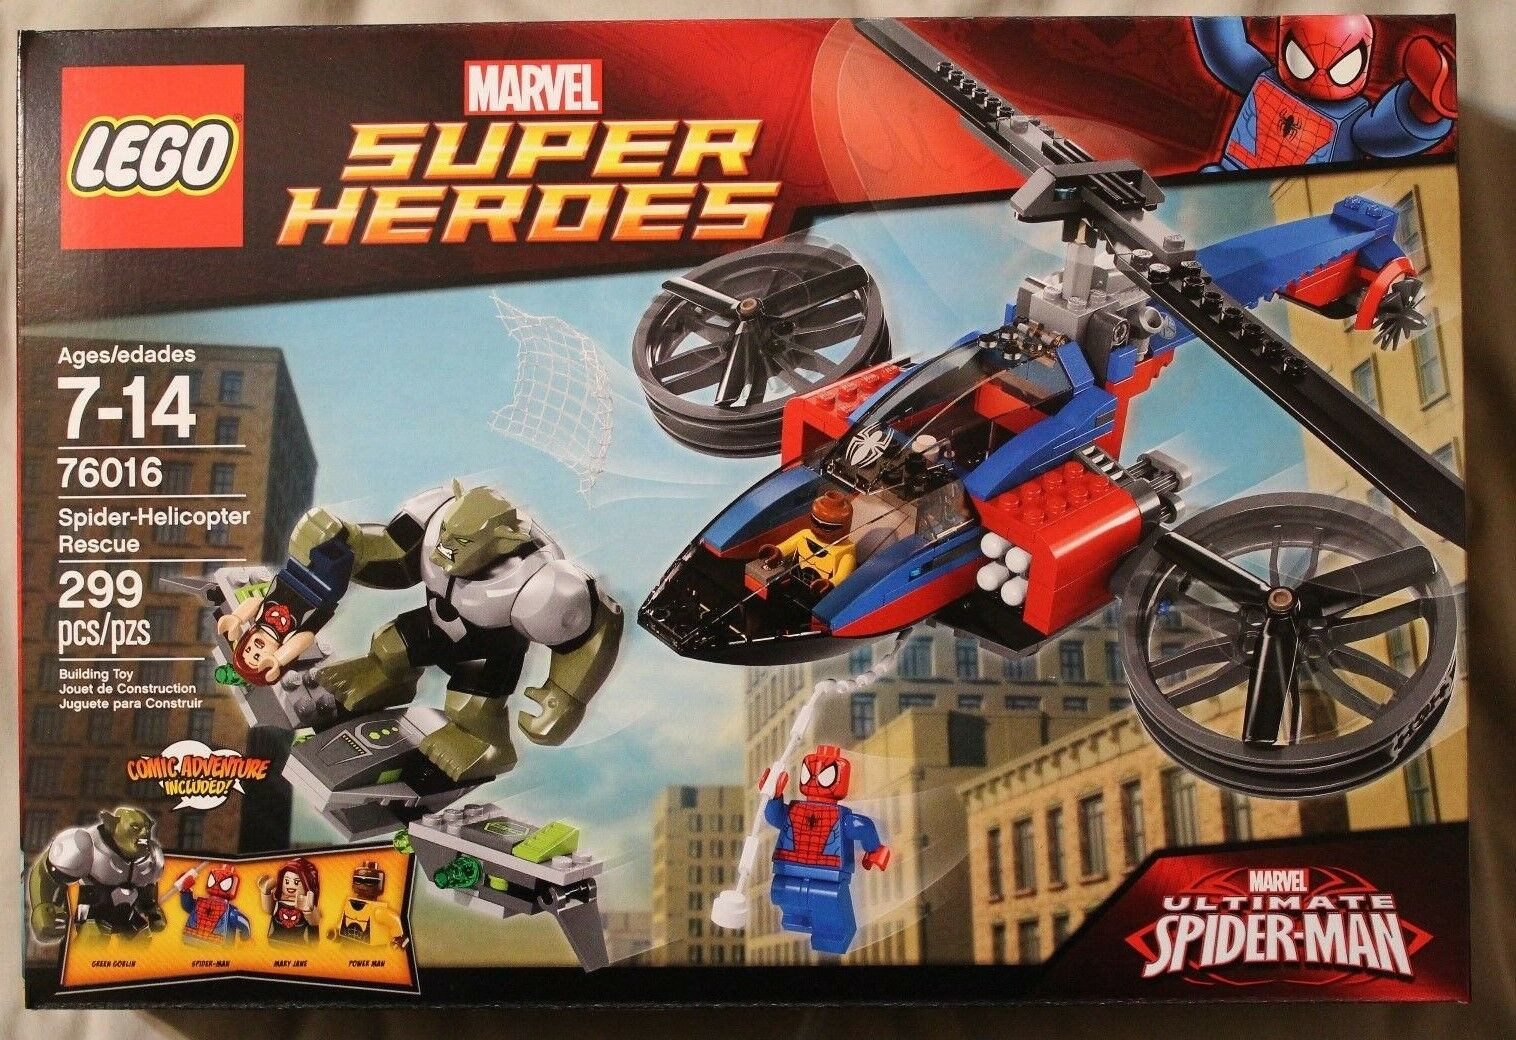 Lego 76016 SPIDER-HELICOPTER RESCUE  Marvel Super heroes  299 Pieces NIB